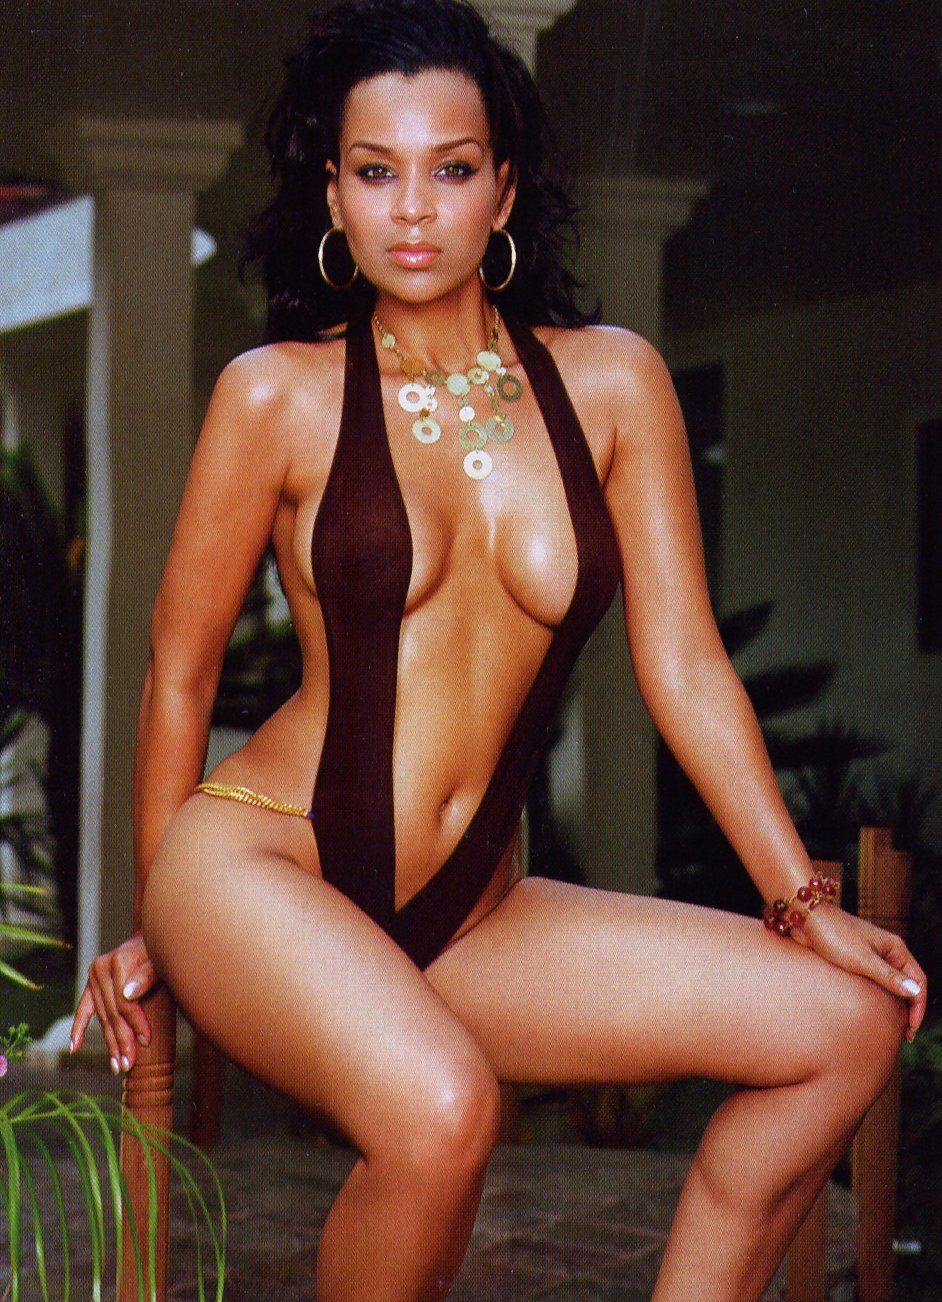 Business. Pics of lisaraye mccoy naked not absolutely